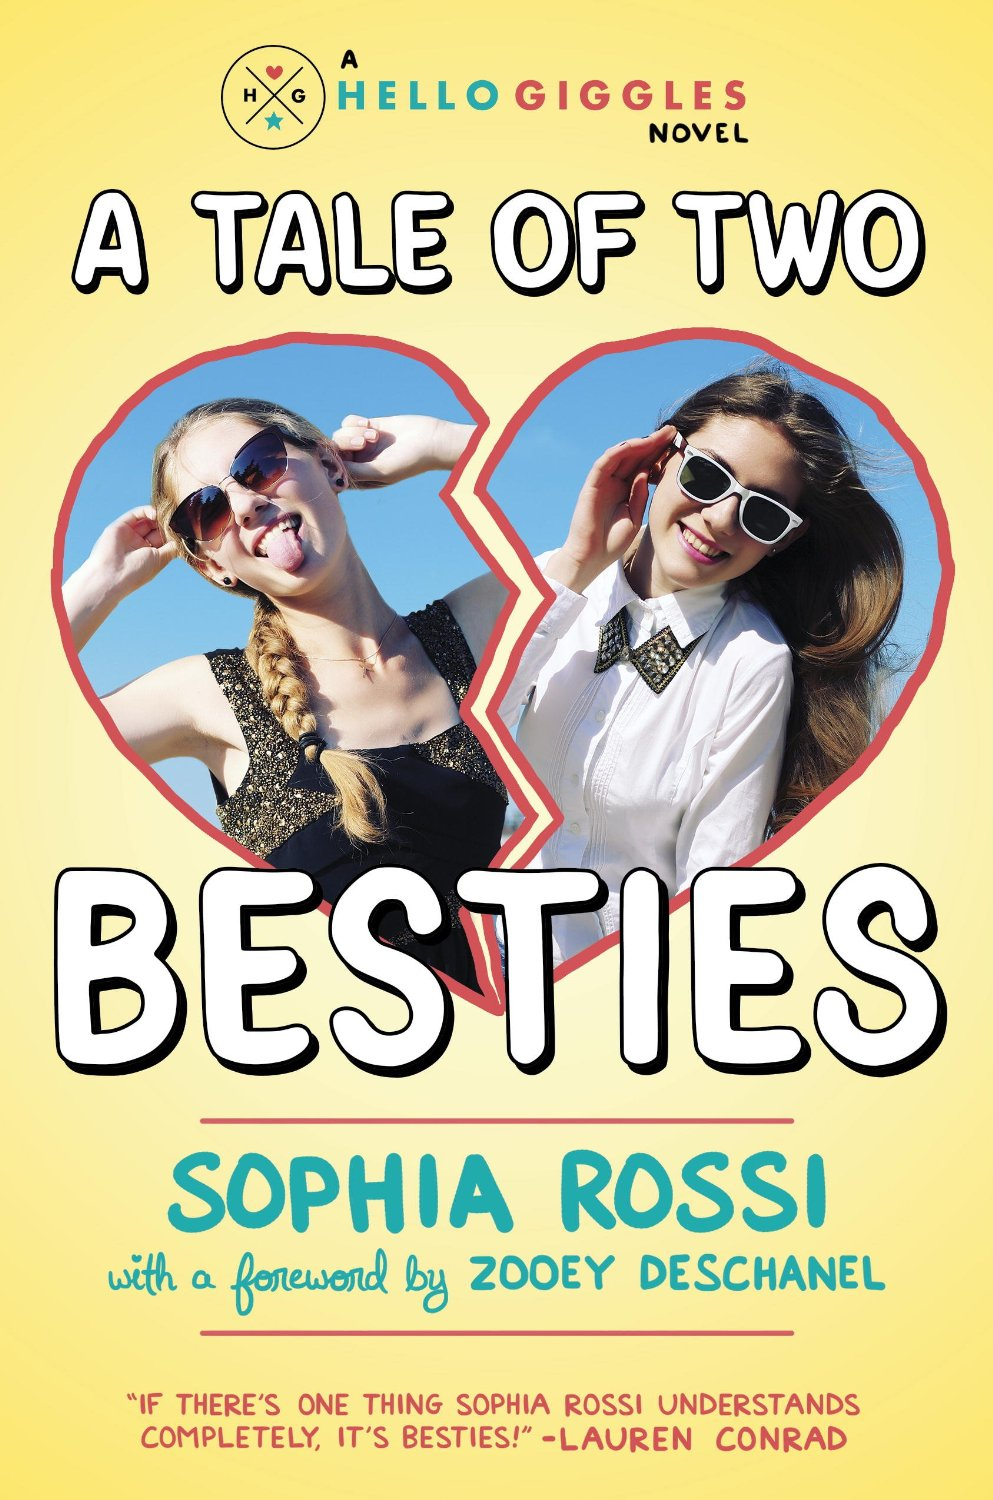 Next Week: Meet us on our 'A Tale of Two Besties' book tour, featuring special guests!